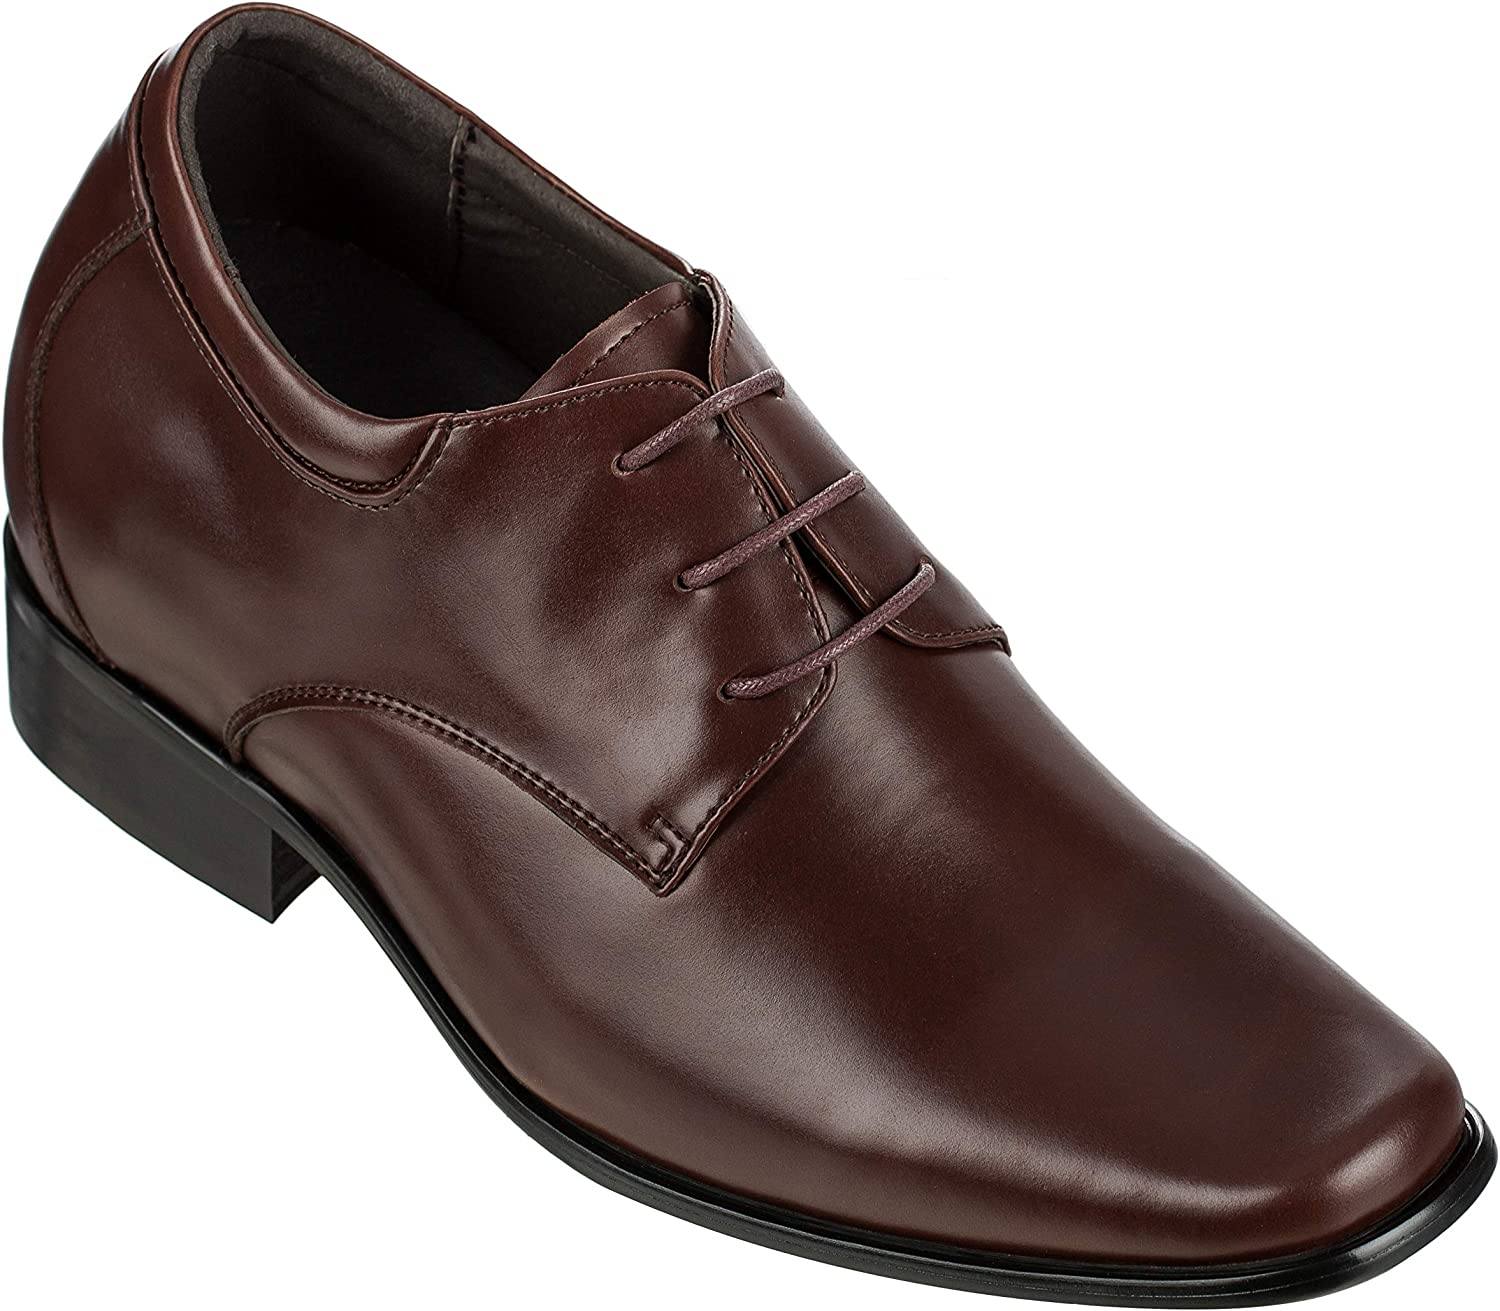 CALDEN - K56550-3.2 Inches Taller - Size 11 D US - Height Increasing Elevator shoes (Brown Dress shoes)